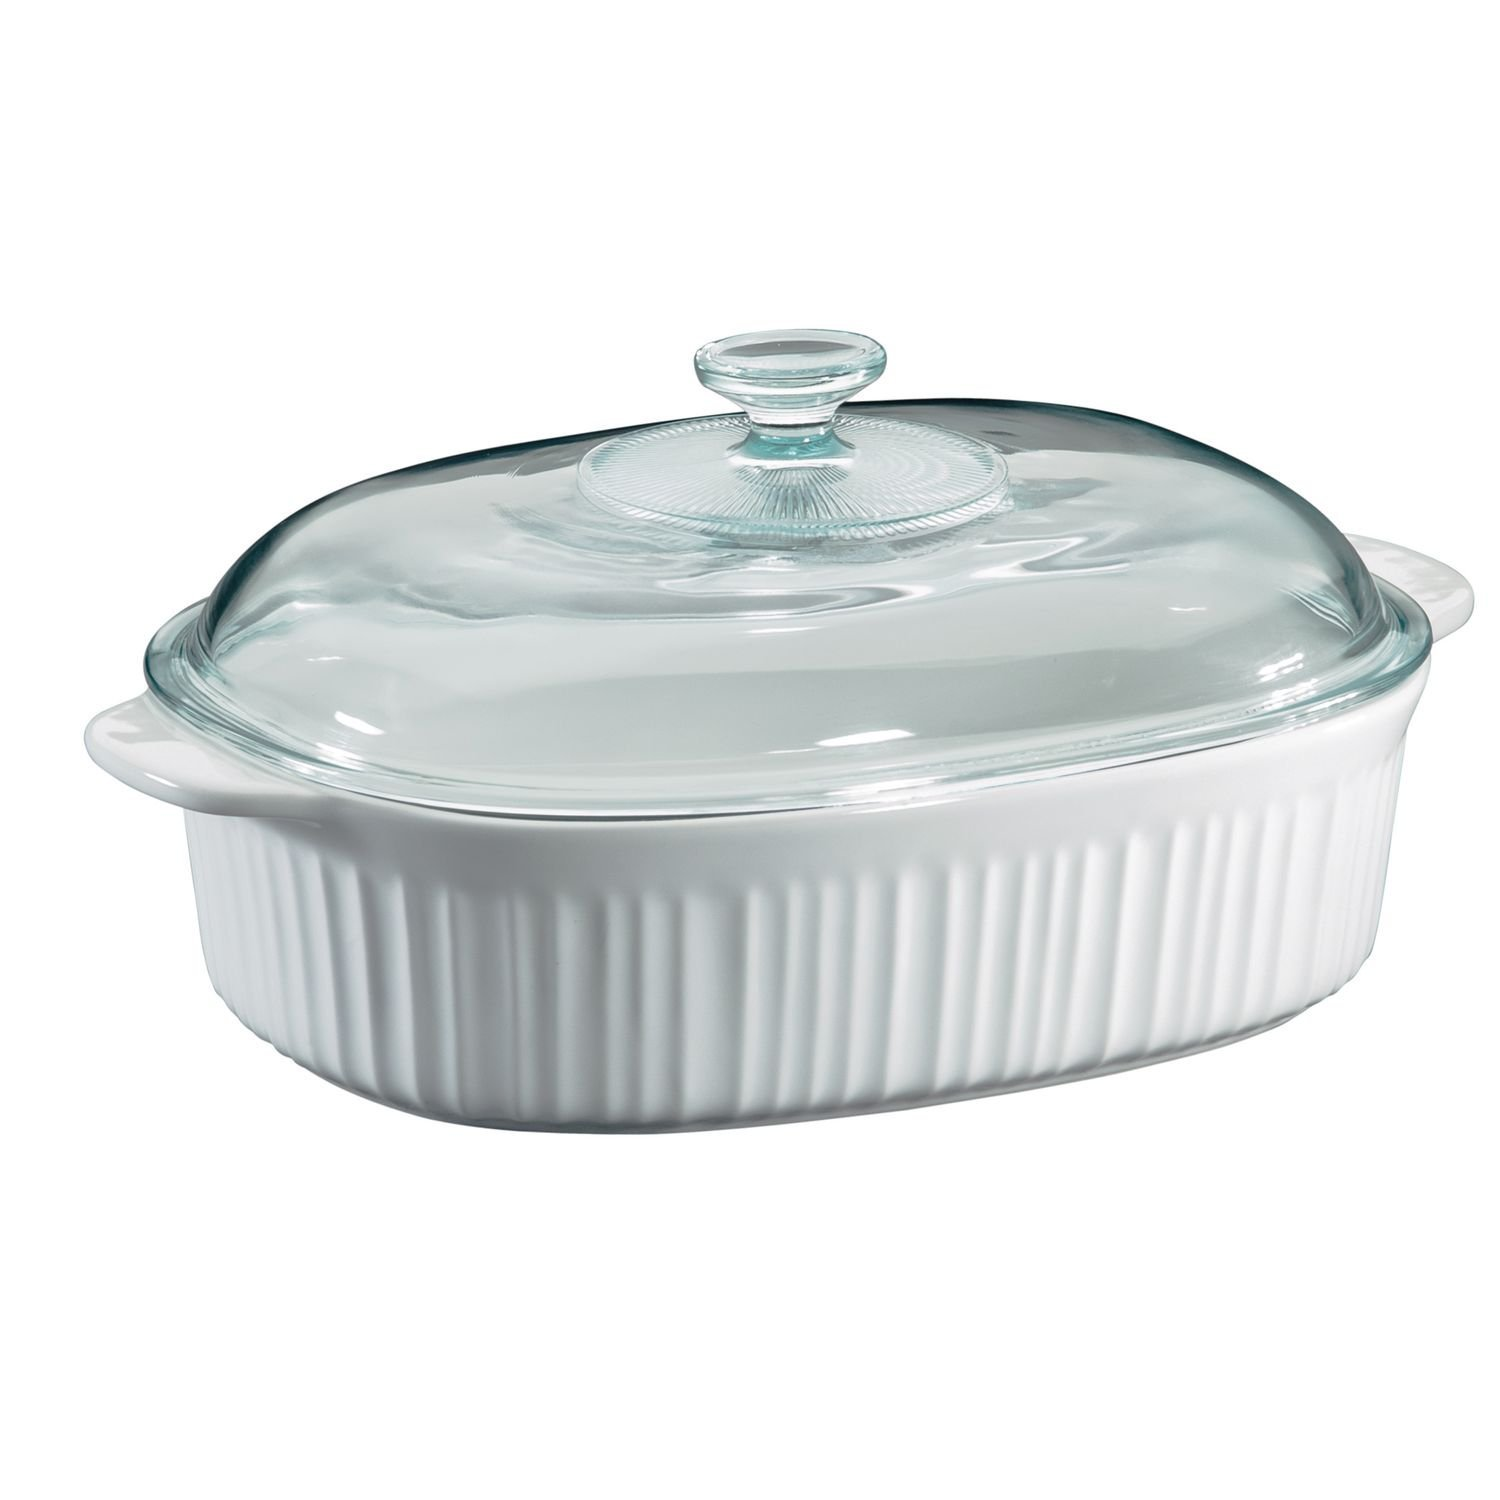 Corningware French White 4 Quart Oval Casserole W/Glass Cover